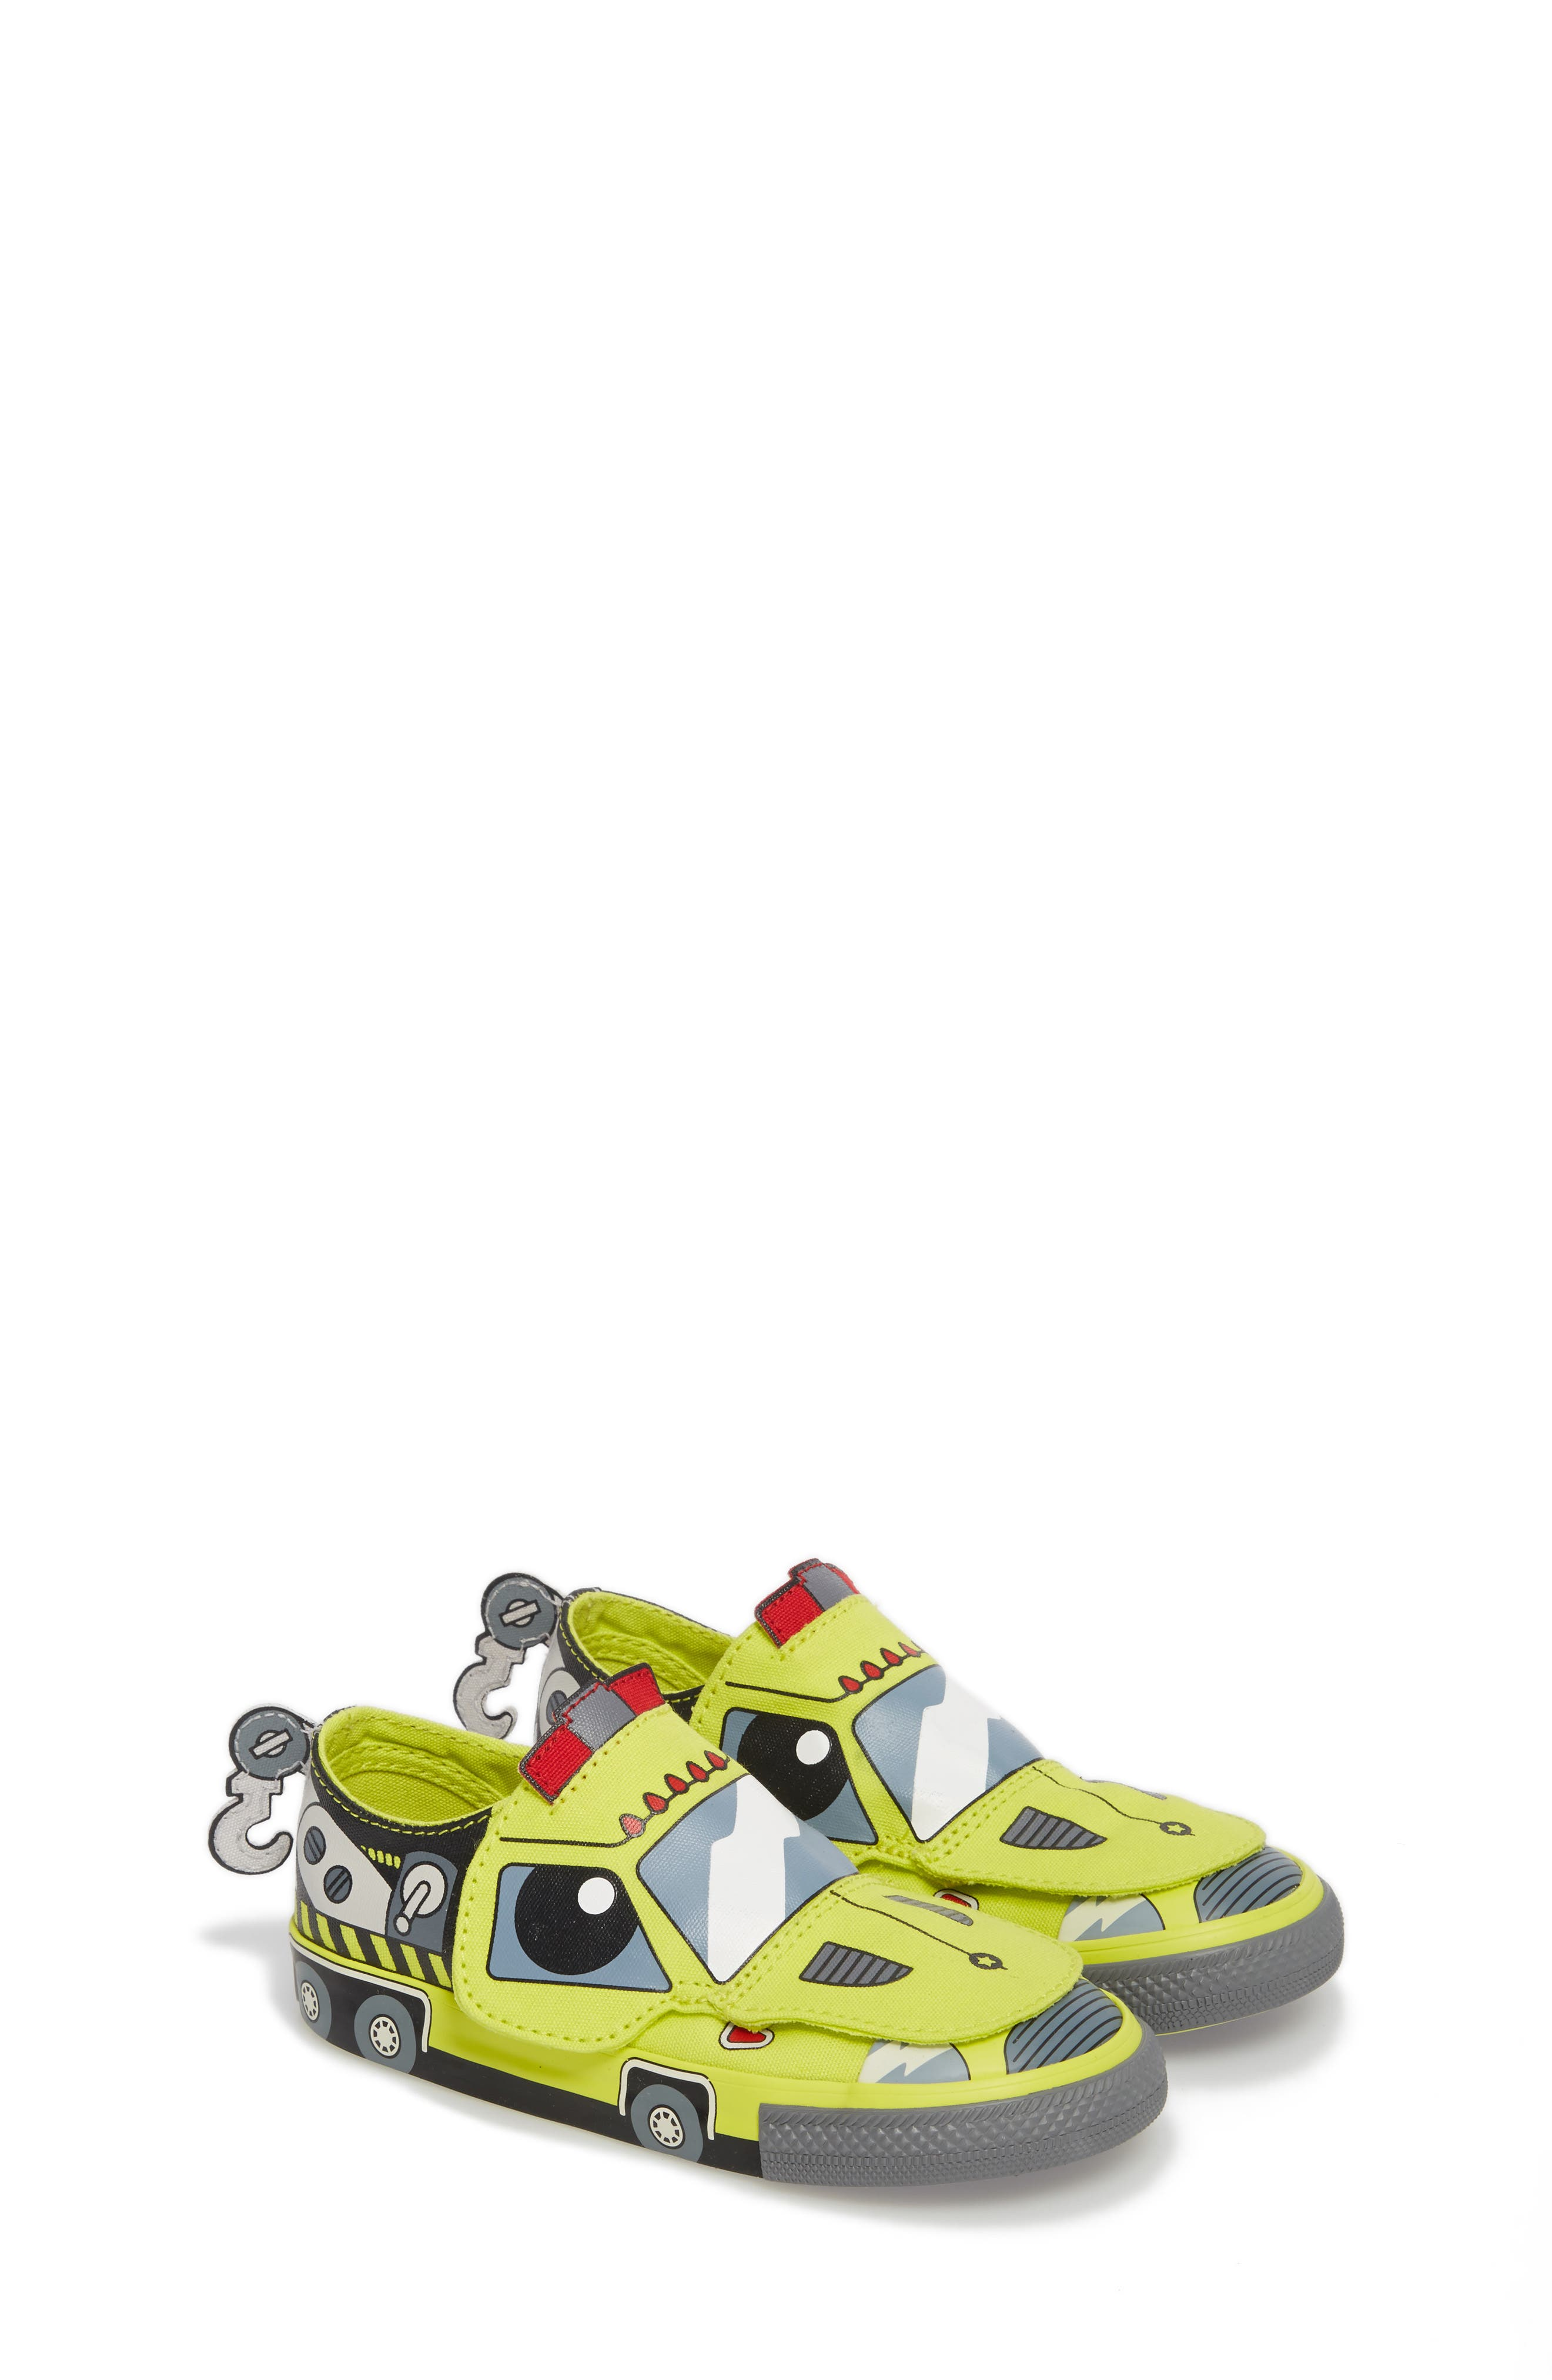 Main Image - Converse Chuck Taylor® All Star® Creatures Slip-On Sneaker (Baby, Walker & Toddler)